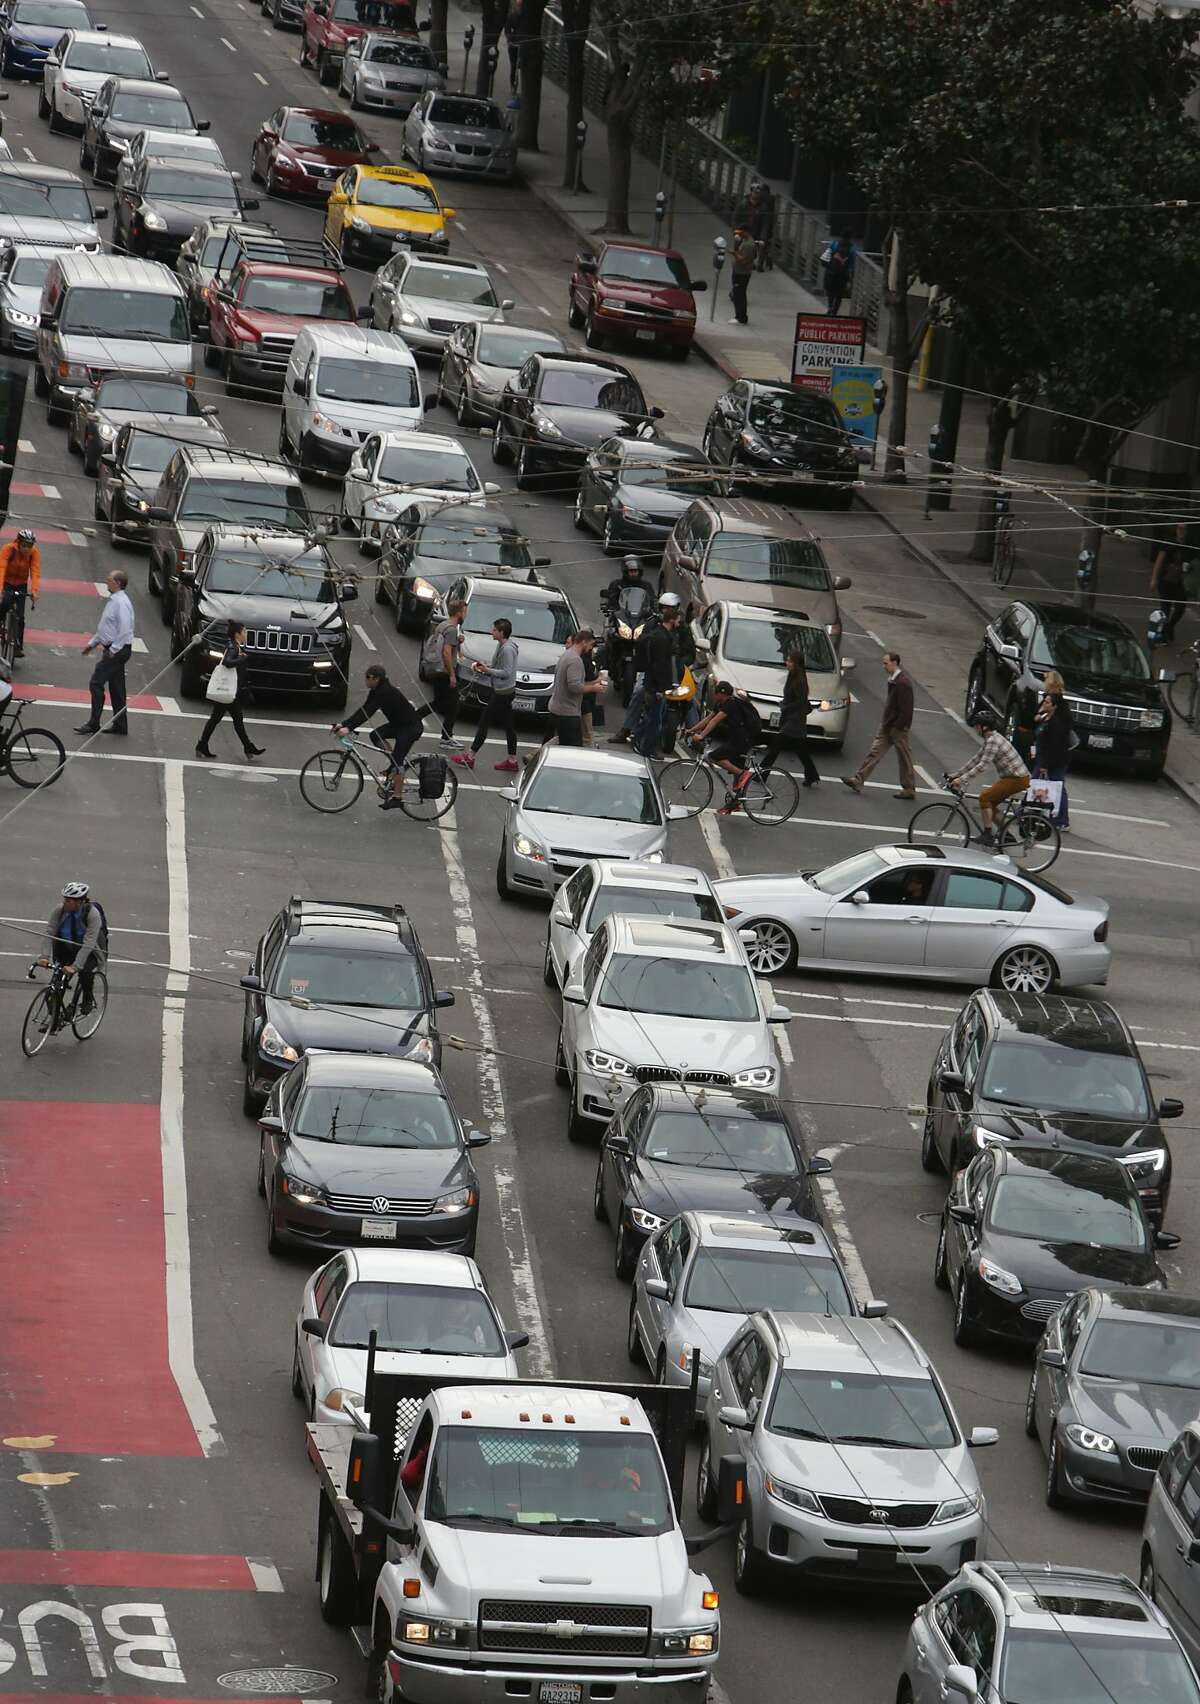 Vehicles sit in traffic along Third Street as bicyclists, pedestrians and vehicles on Folsom Street cross and turn onto Third Street on Tuesday, October 27, 2015 in San Francisco, Calif.